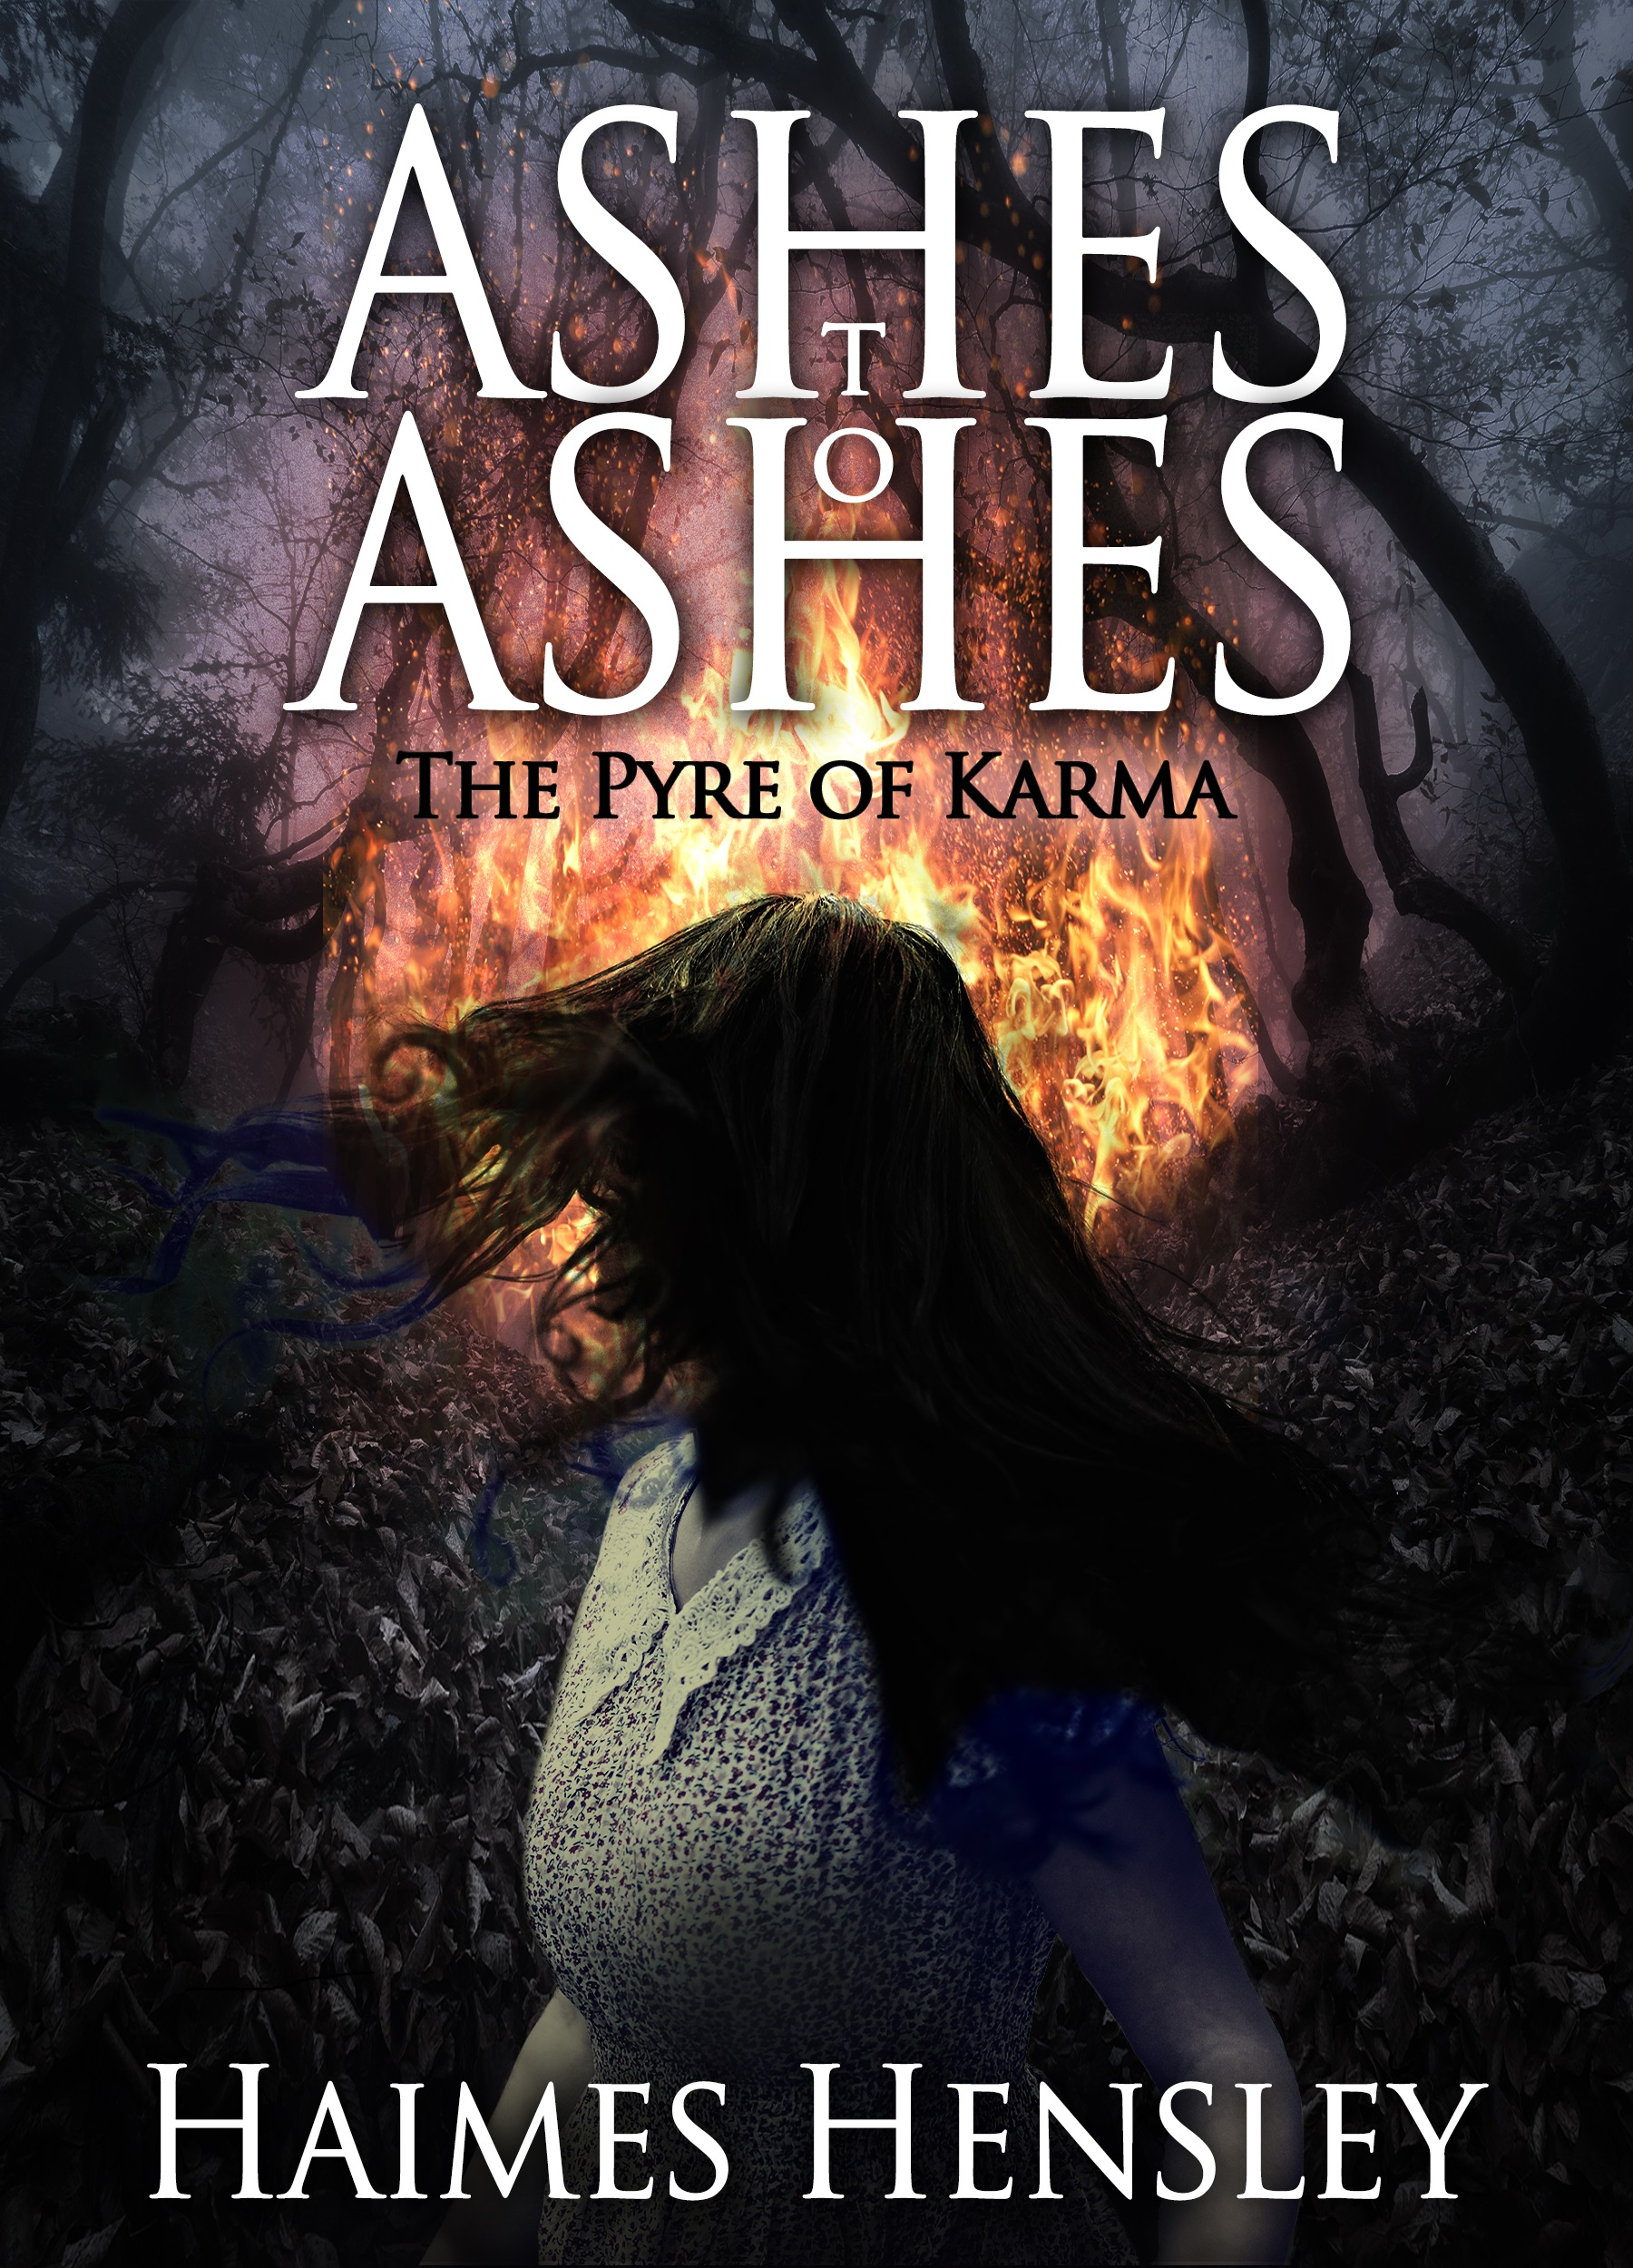 Ashes to Ashes, The Pyre of Karma, an Ebook by Haimes Hensley